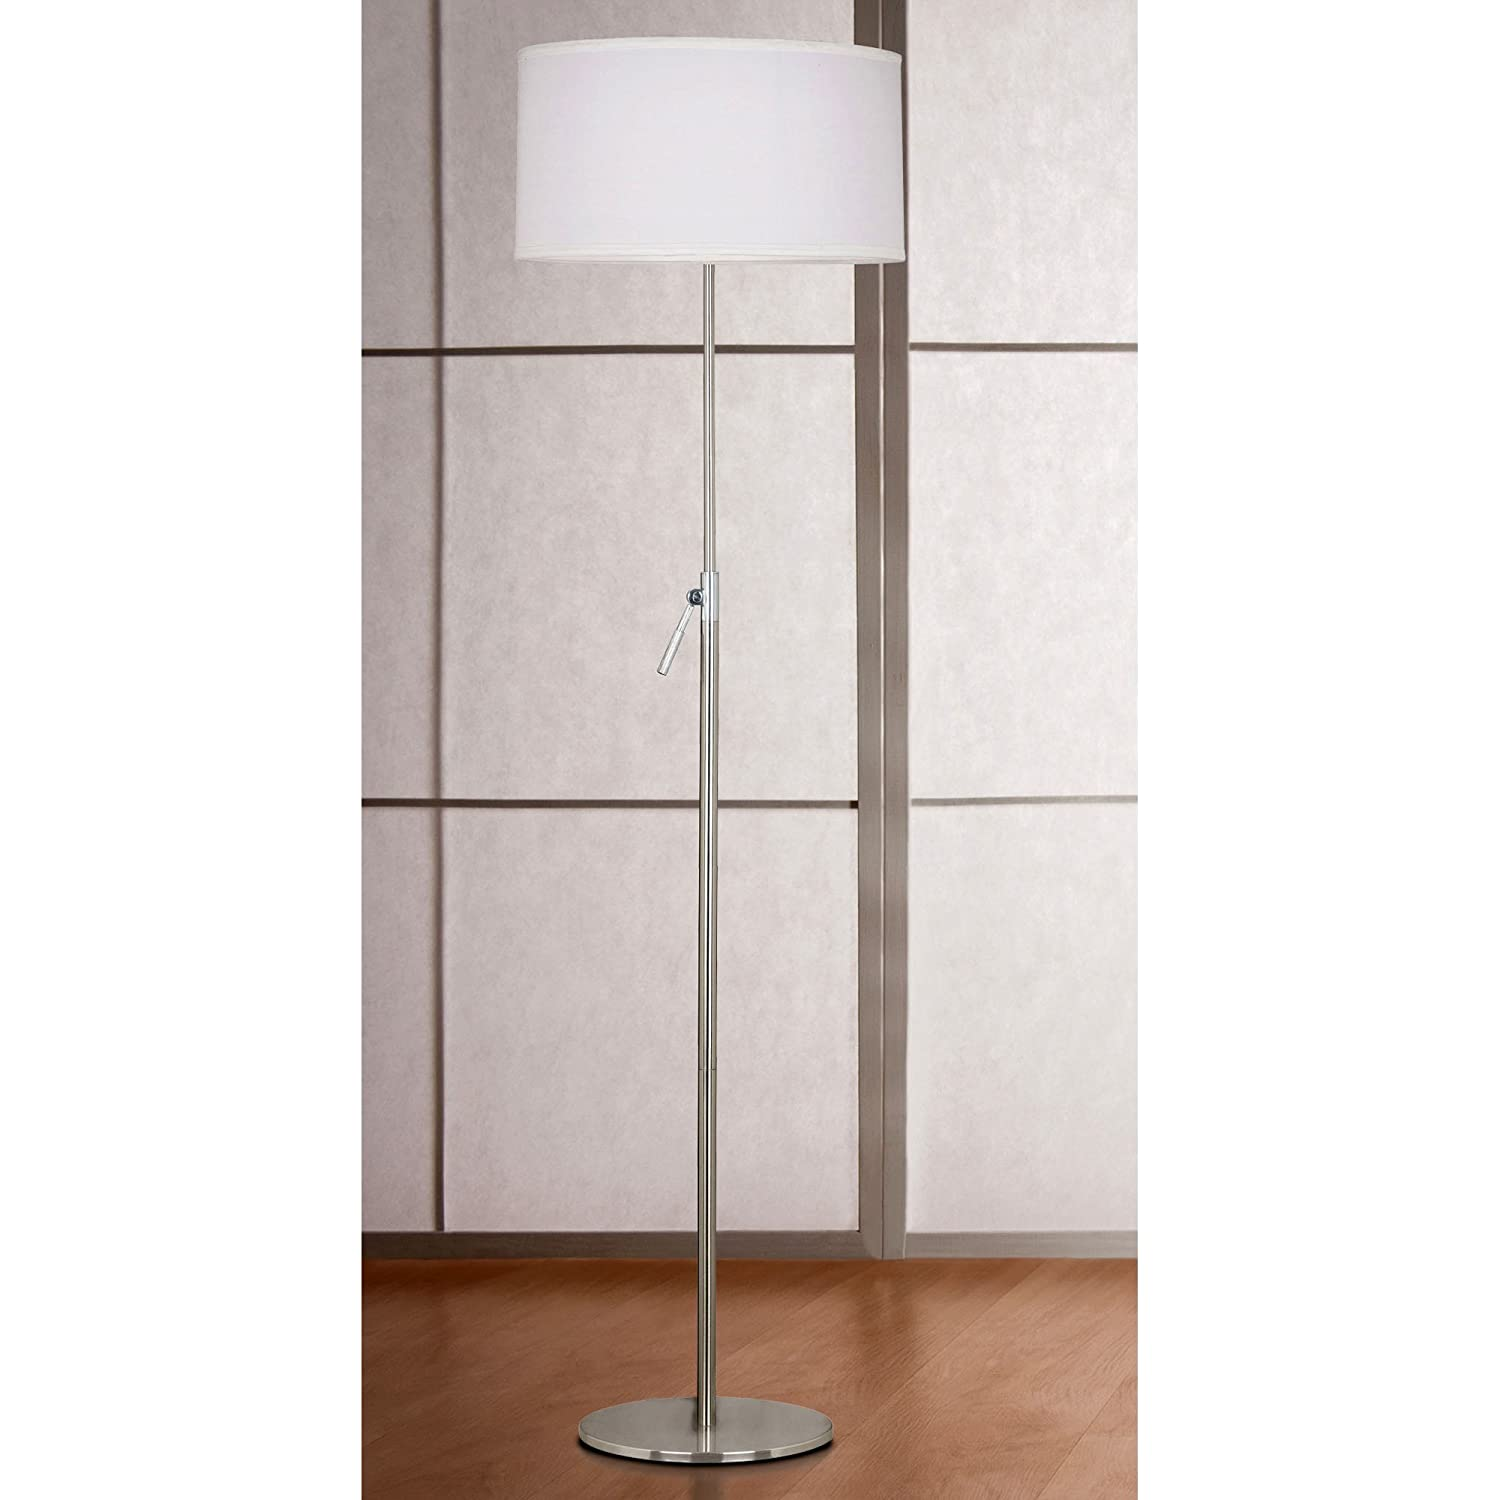 Kenroy Home BS Propel Adjustable Floor Lamp Brushed Steel